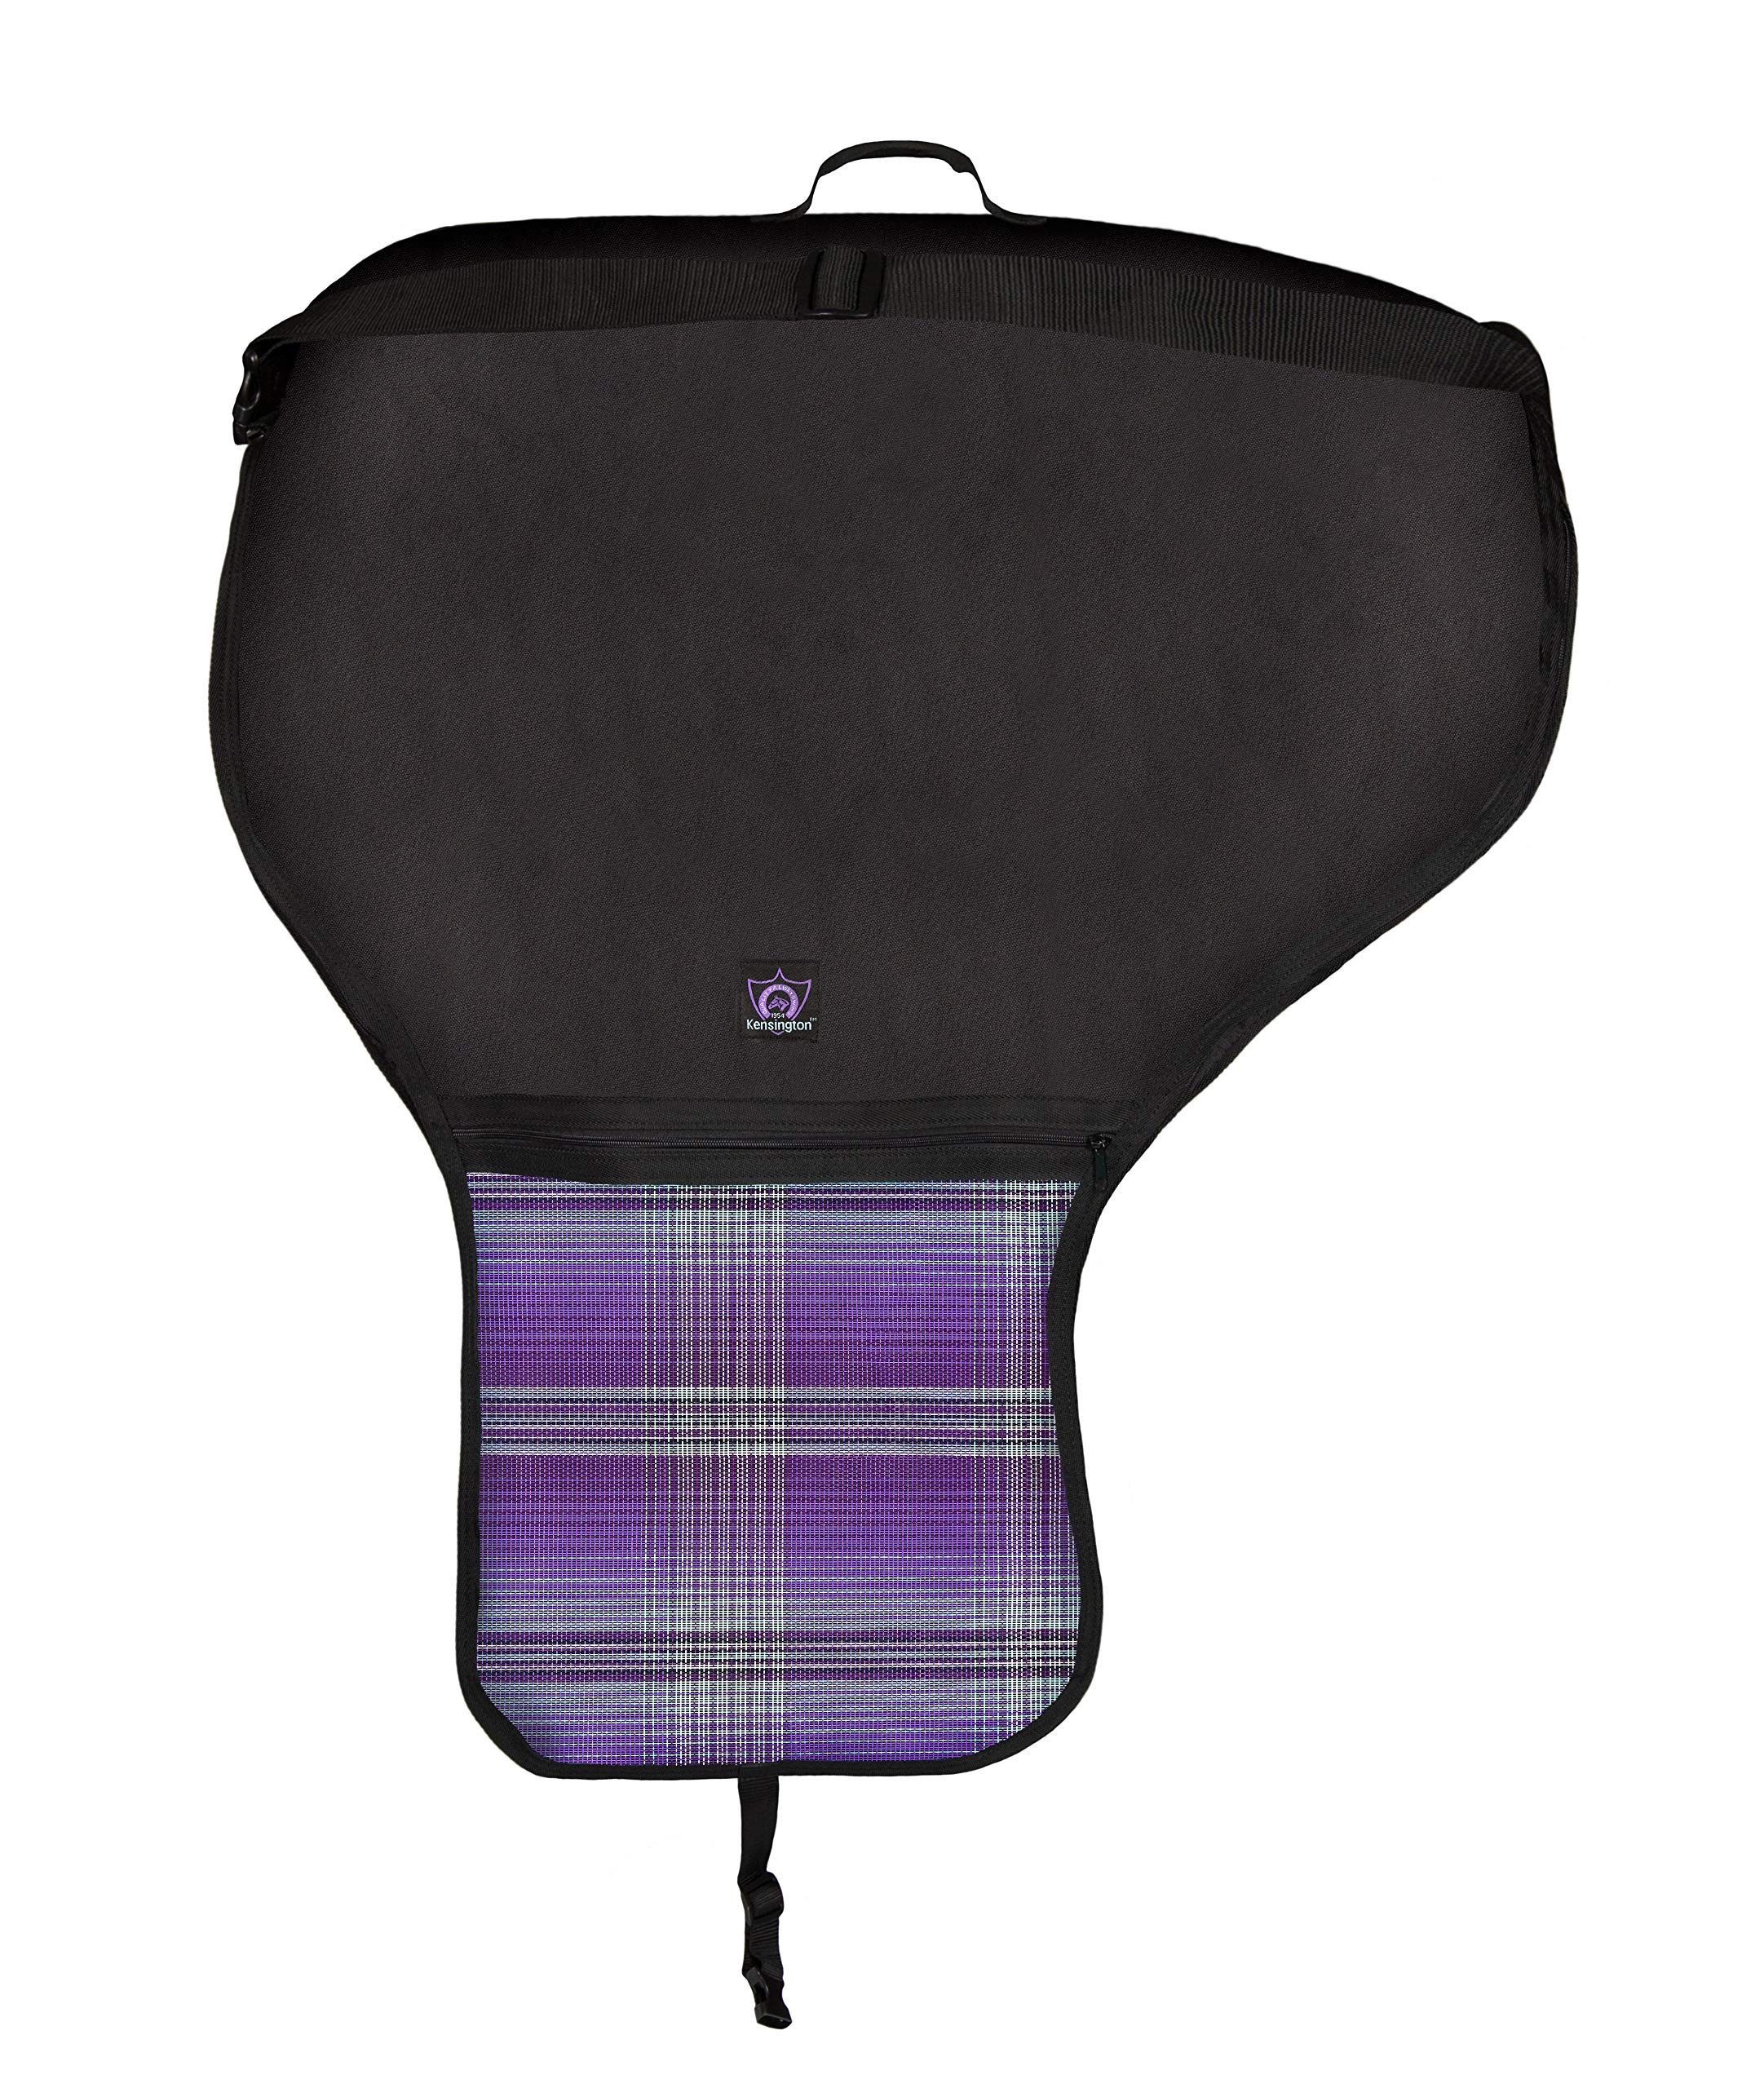 Kensington Protective Products All Around Western Saddle Cover   Waterproof   Breathable   One Size, Lavender Mint Plaid